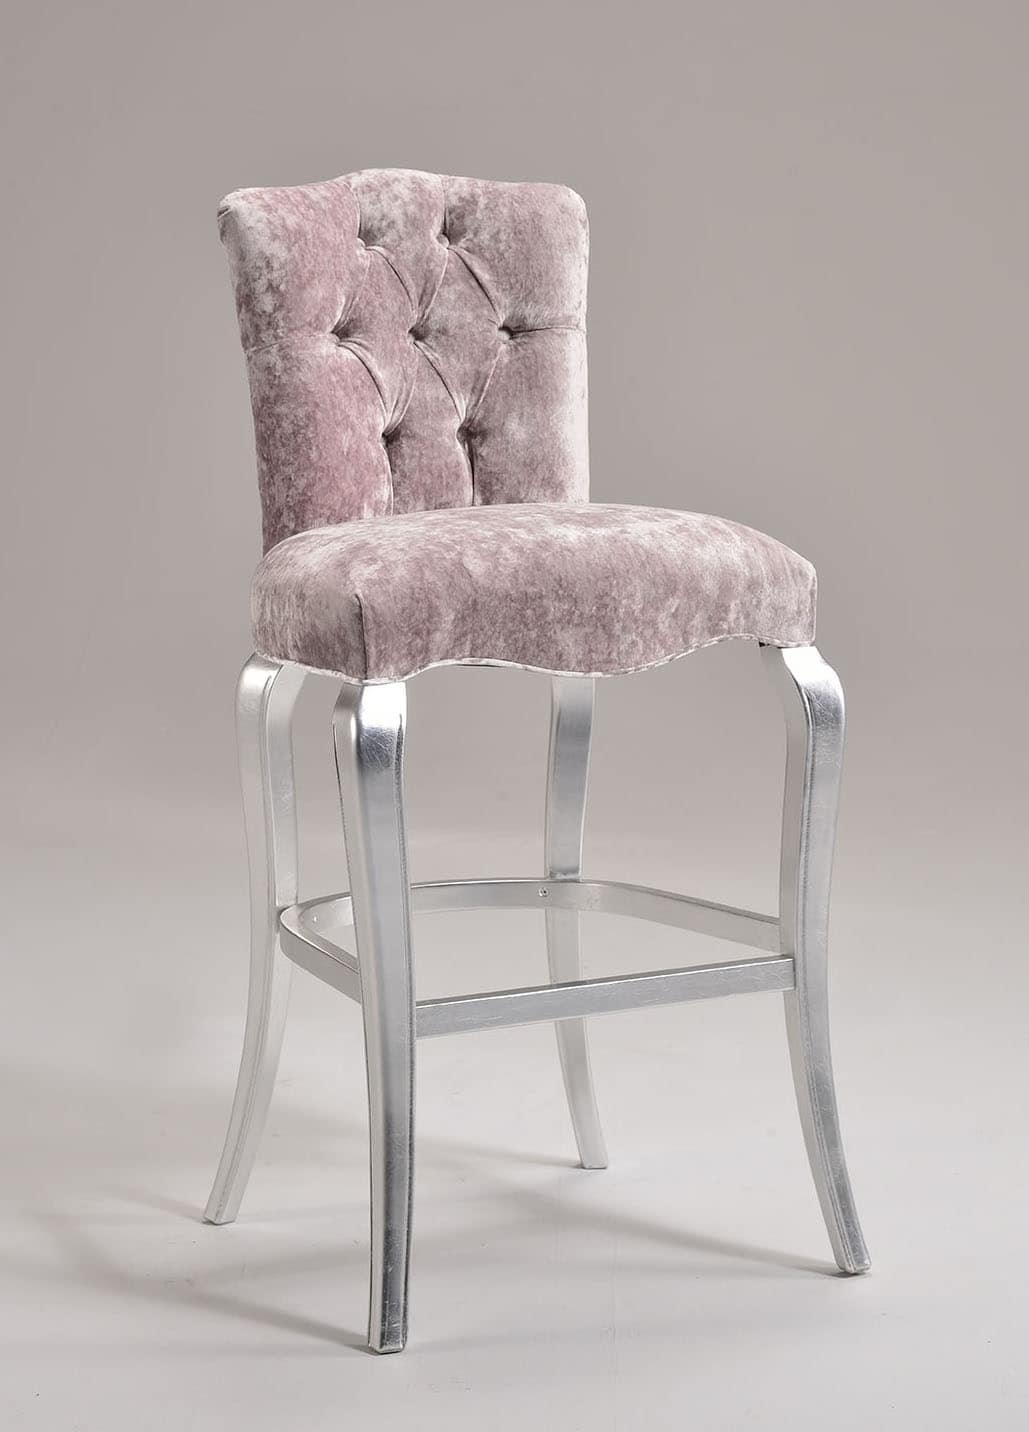 ROYAL barstool 8494B, Beech stool, quilted backrest, for historic bar